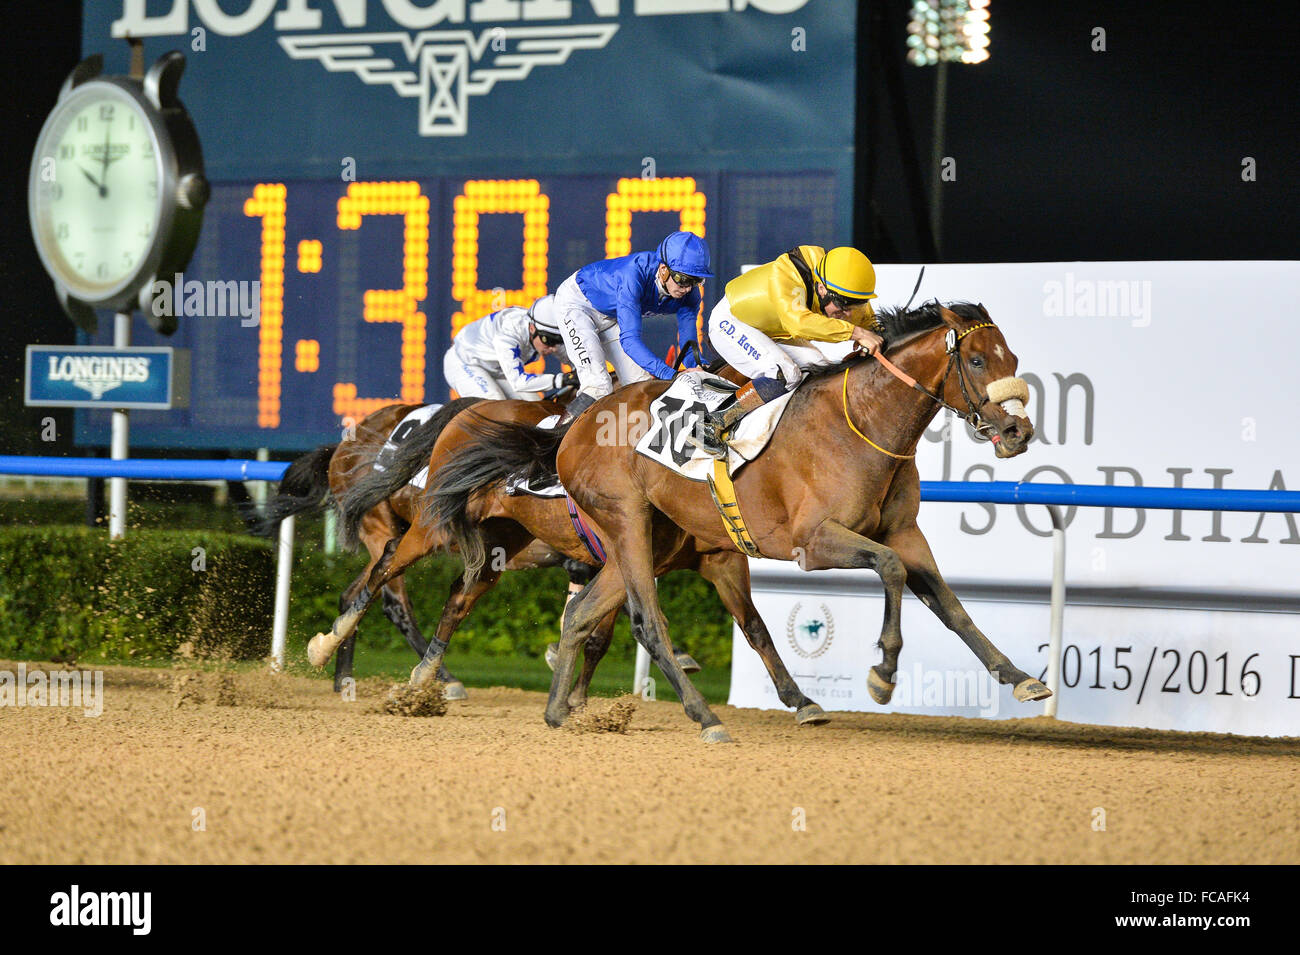 Dubai, UAE. 21st January, 2016. Christopher Hayes  on Top Clearance, wins the District One Mansions race ahead of Stock Photo